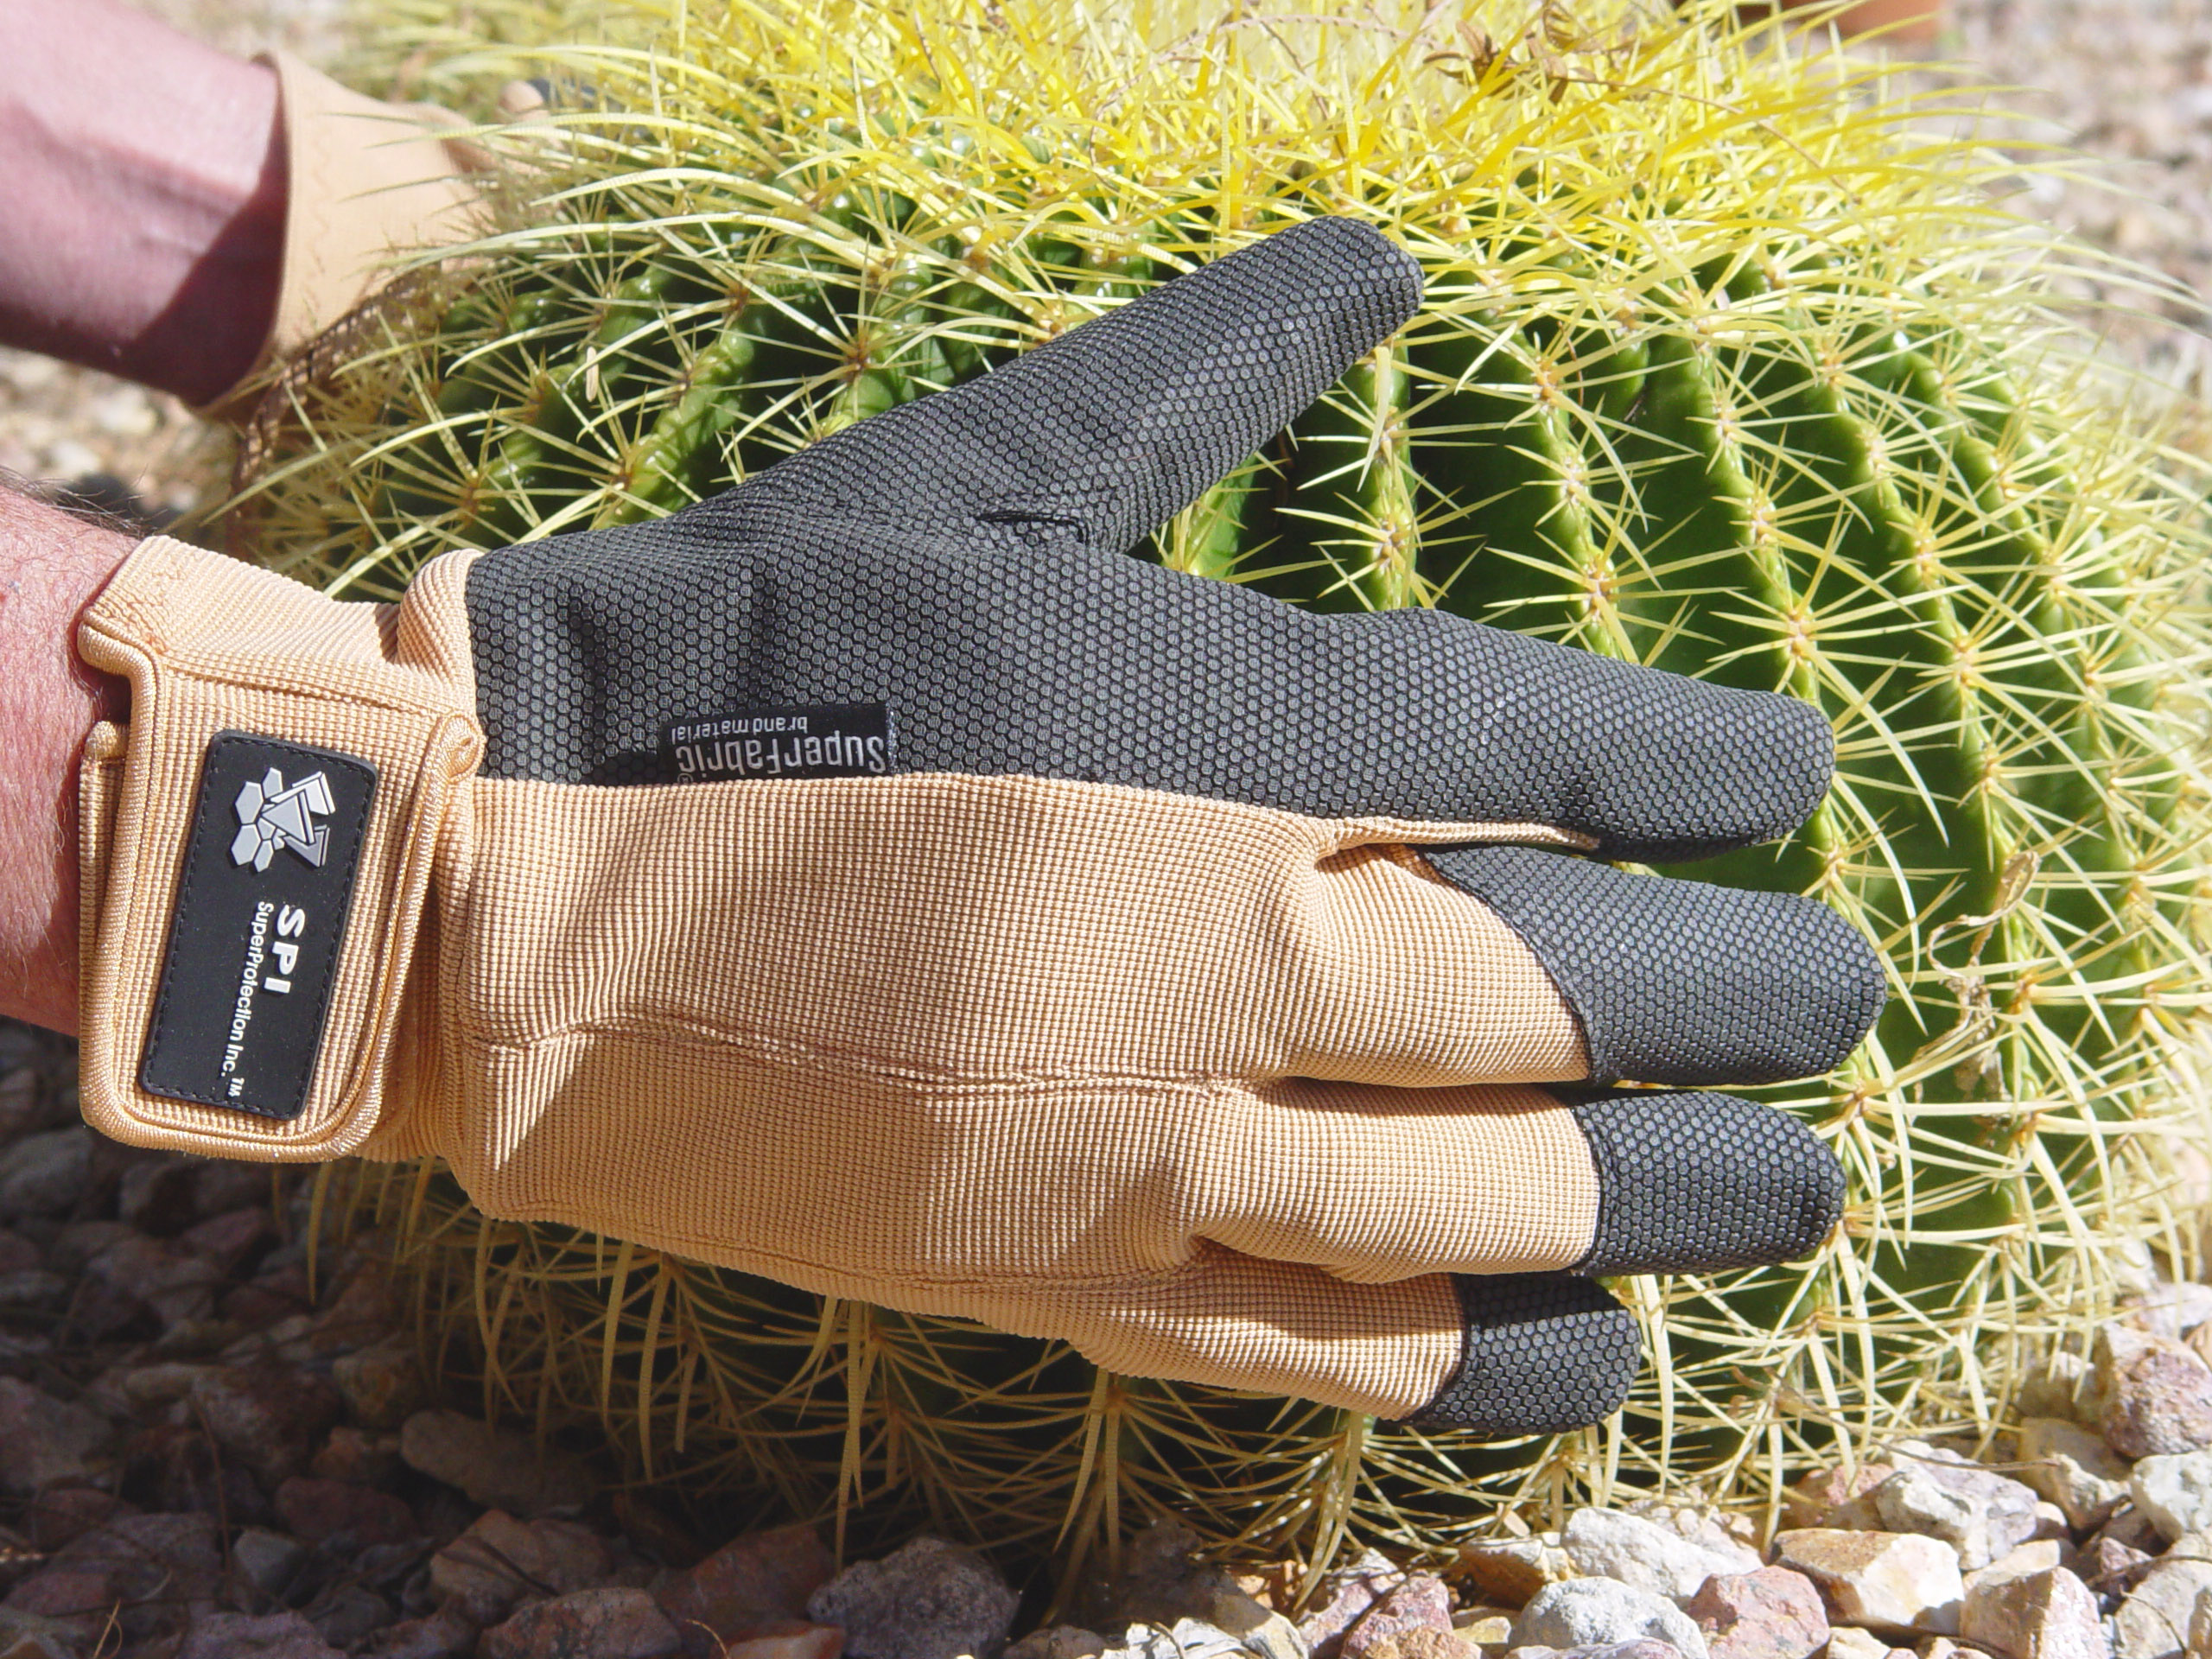 Perfect Thorn ArMOr GlovesThorn ArMOr Gloves Are Proven Effective For Handling  Roses, Cactus And Many Other Problem Plants.